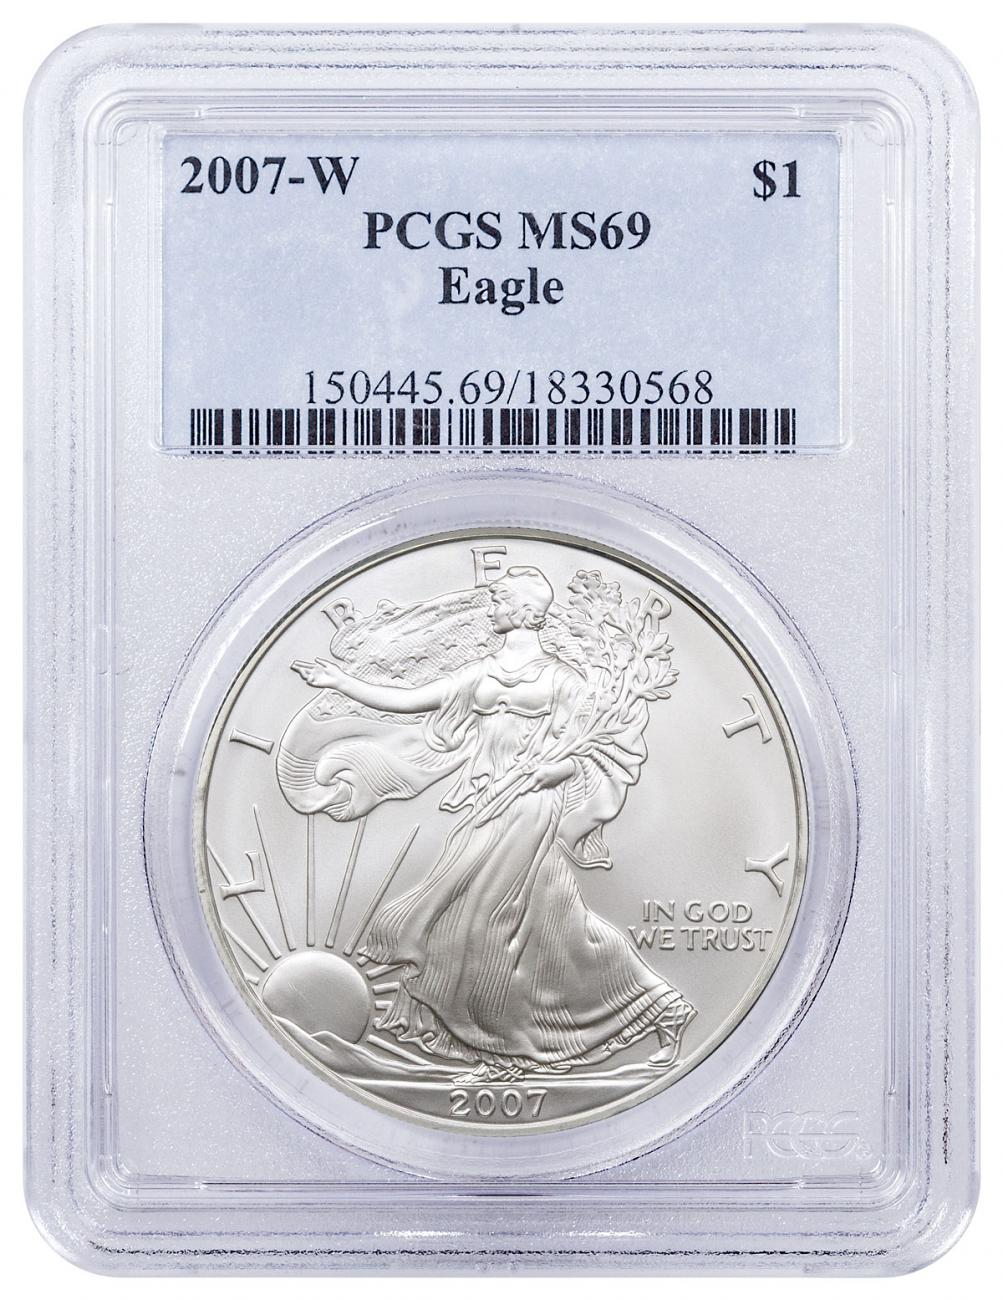 2007-W Burnished Silver Eagle PCGS MS69